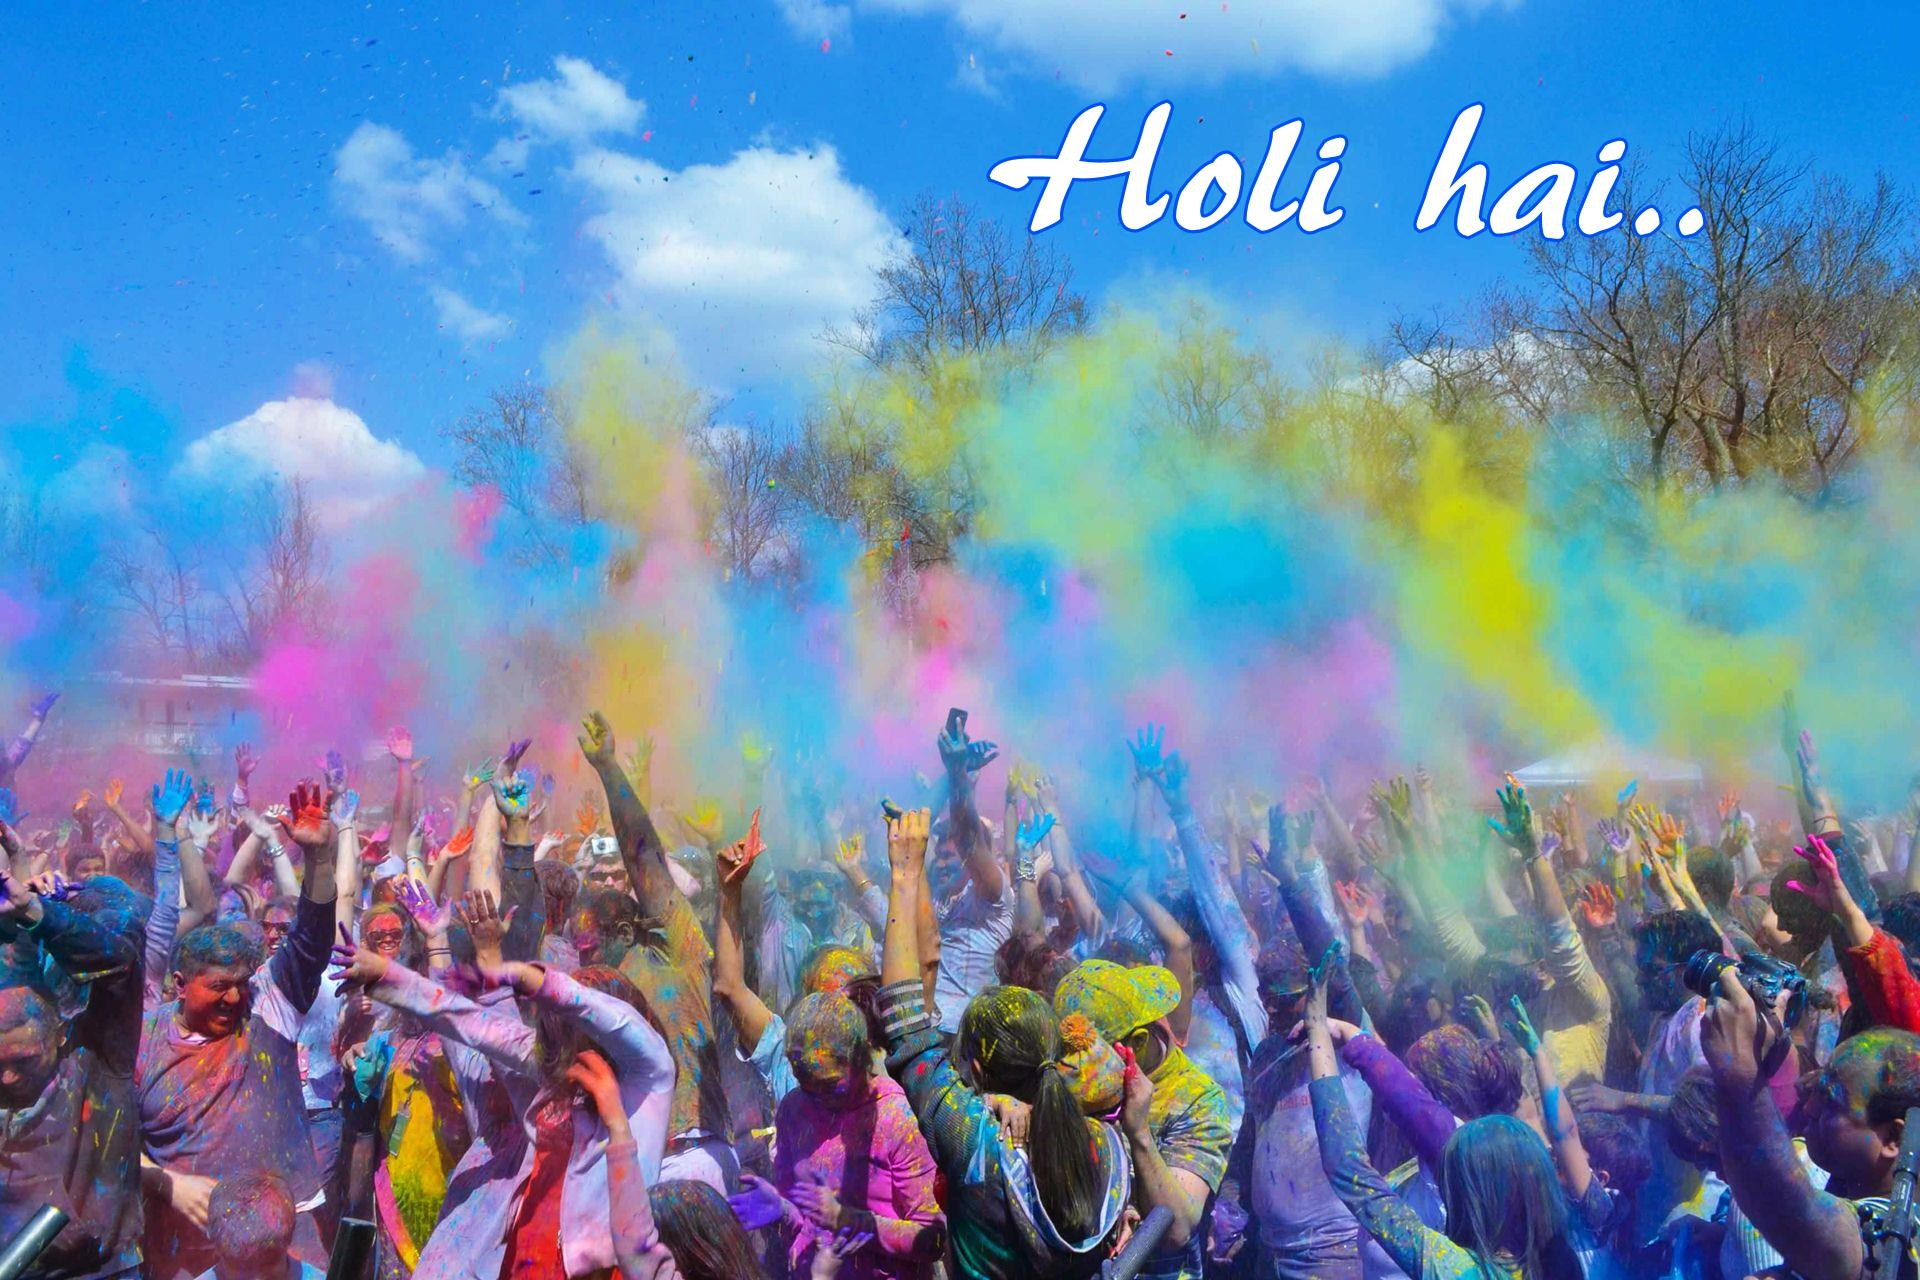 Holi hd wallpaper